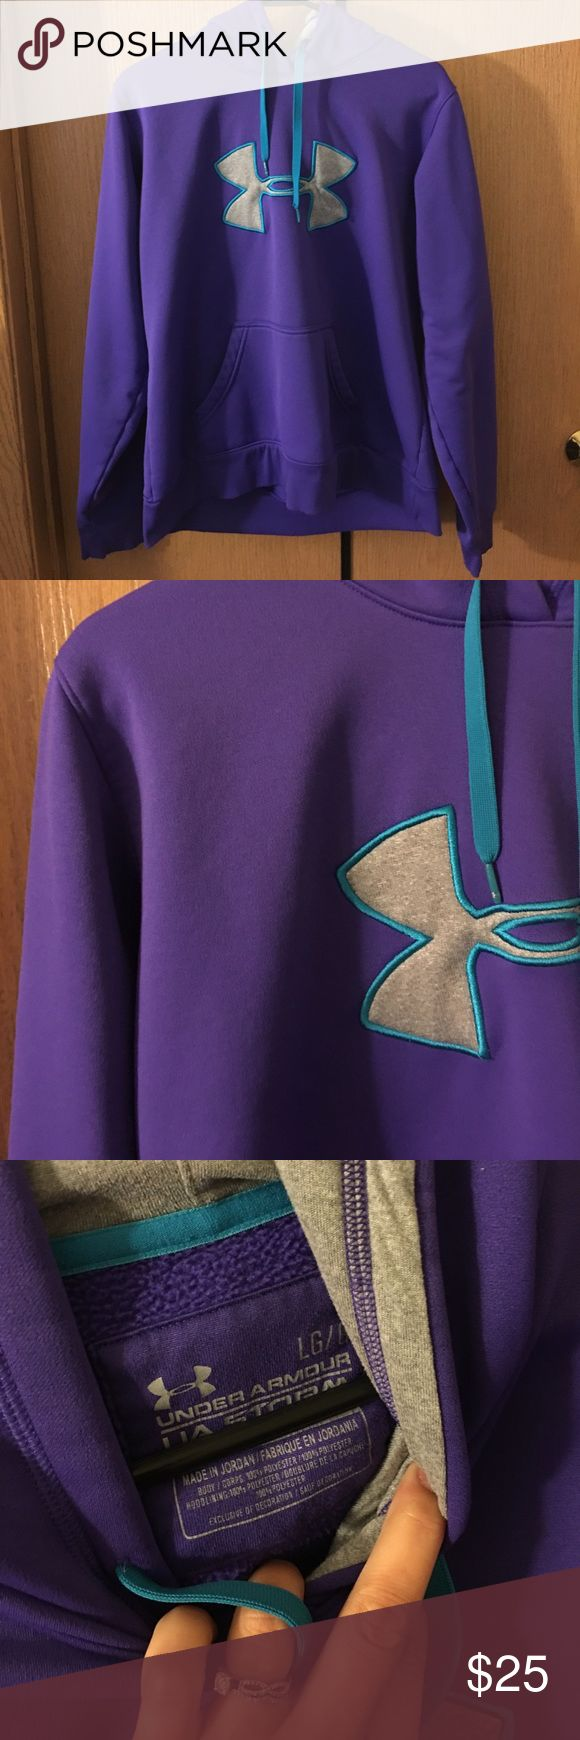 Purple Under Armour Hooded Sweat Shirt Purple Under Armour Sweat Shirt! Used but in good condition -- no flaws! I accept offers:) Under Armour Tops Sweatshirts & Hoodies